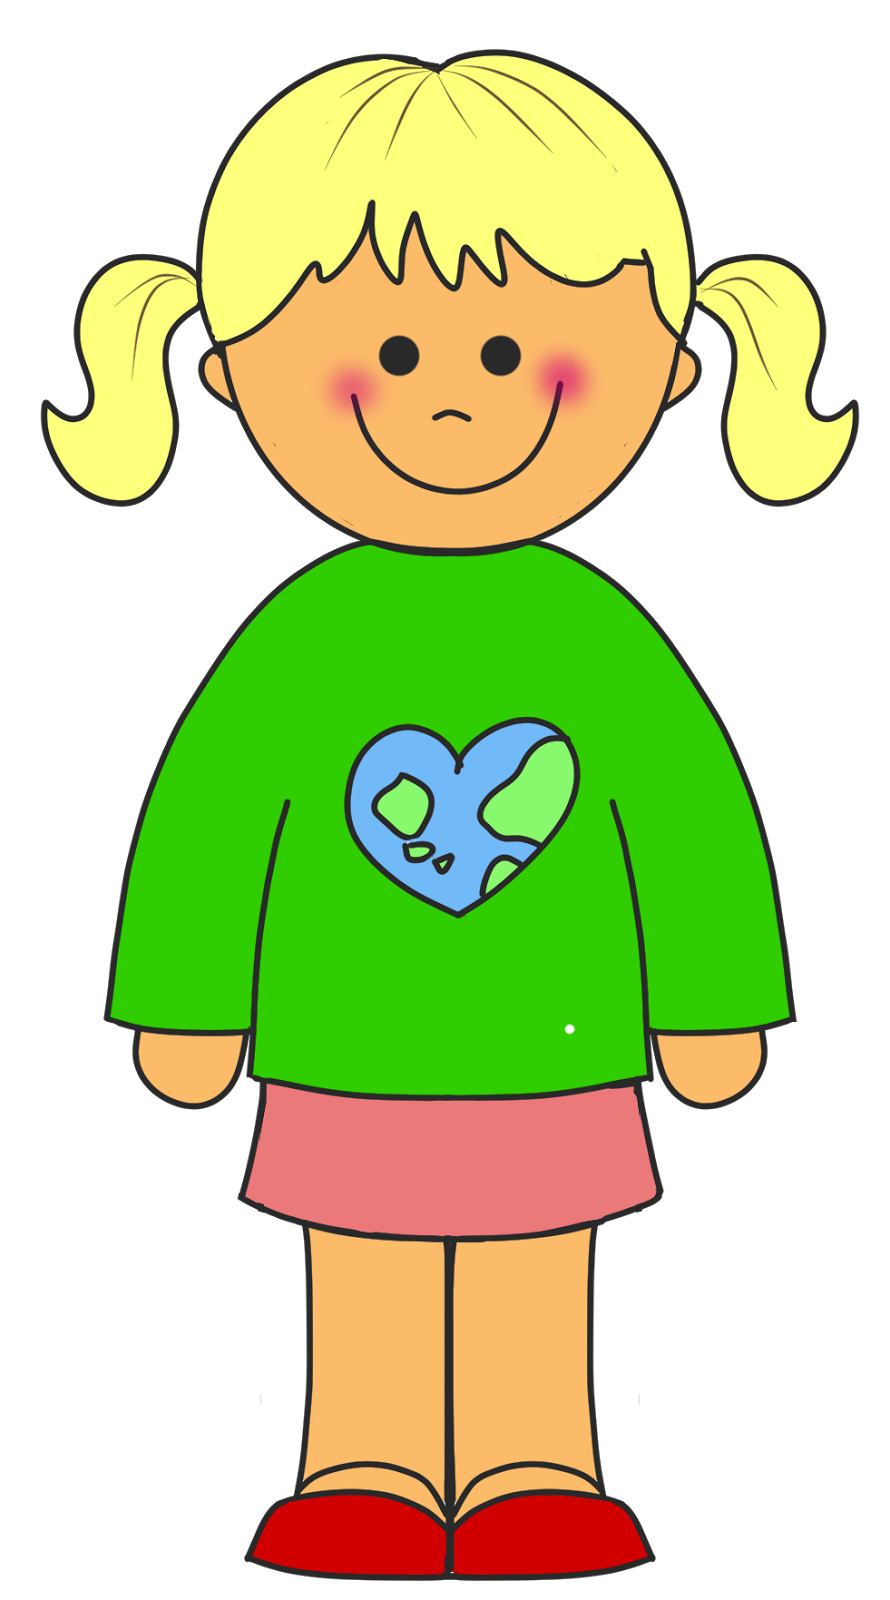 girl clipart clipart panda free clipart images rh clipartpanda com girl clipart png girl clipart images